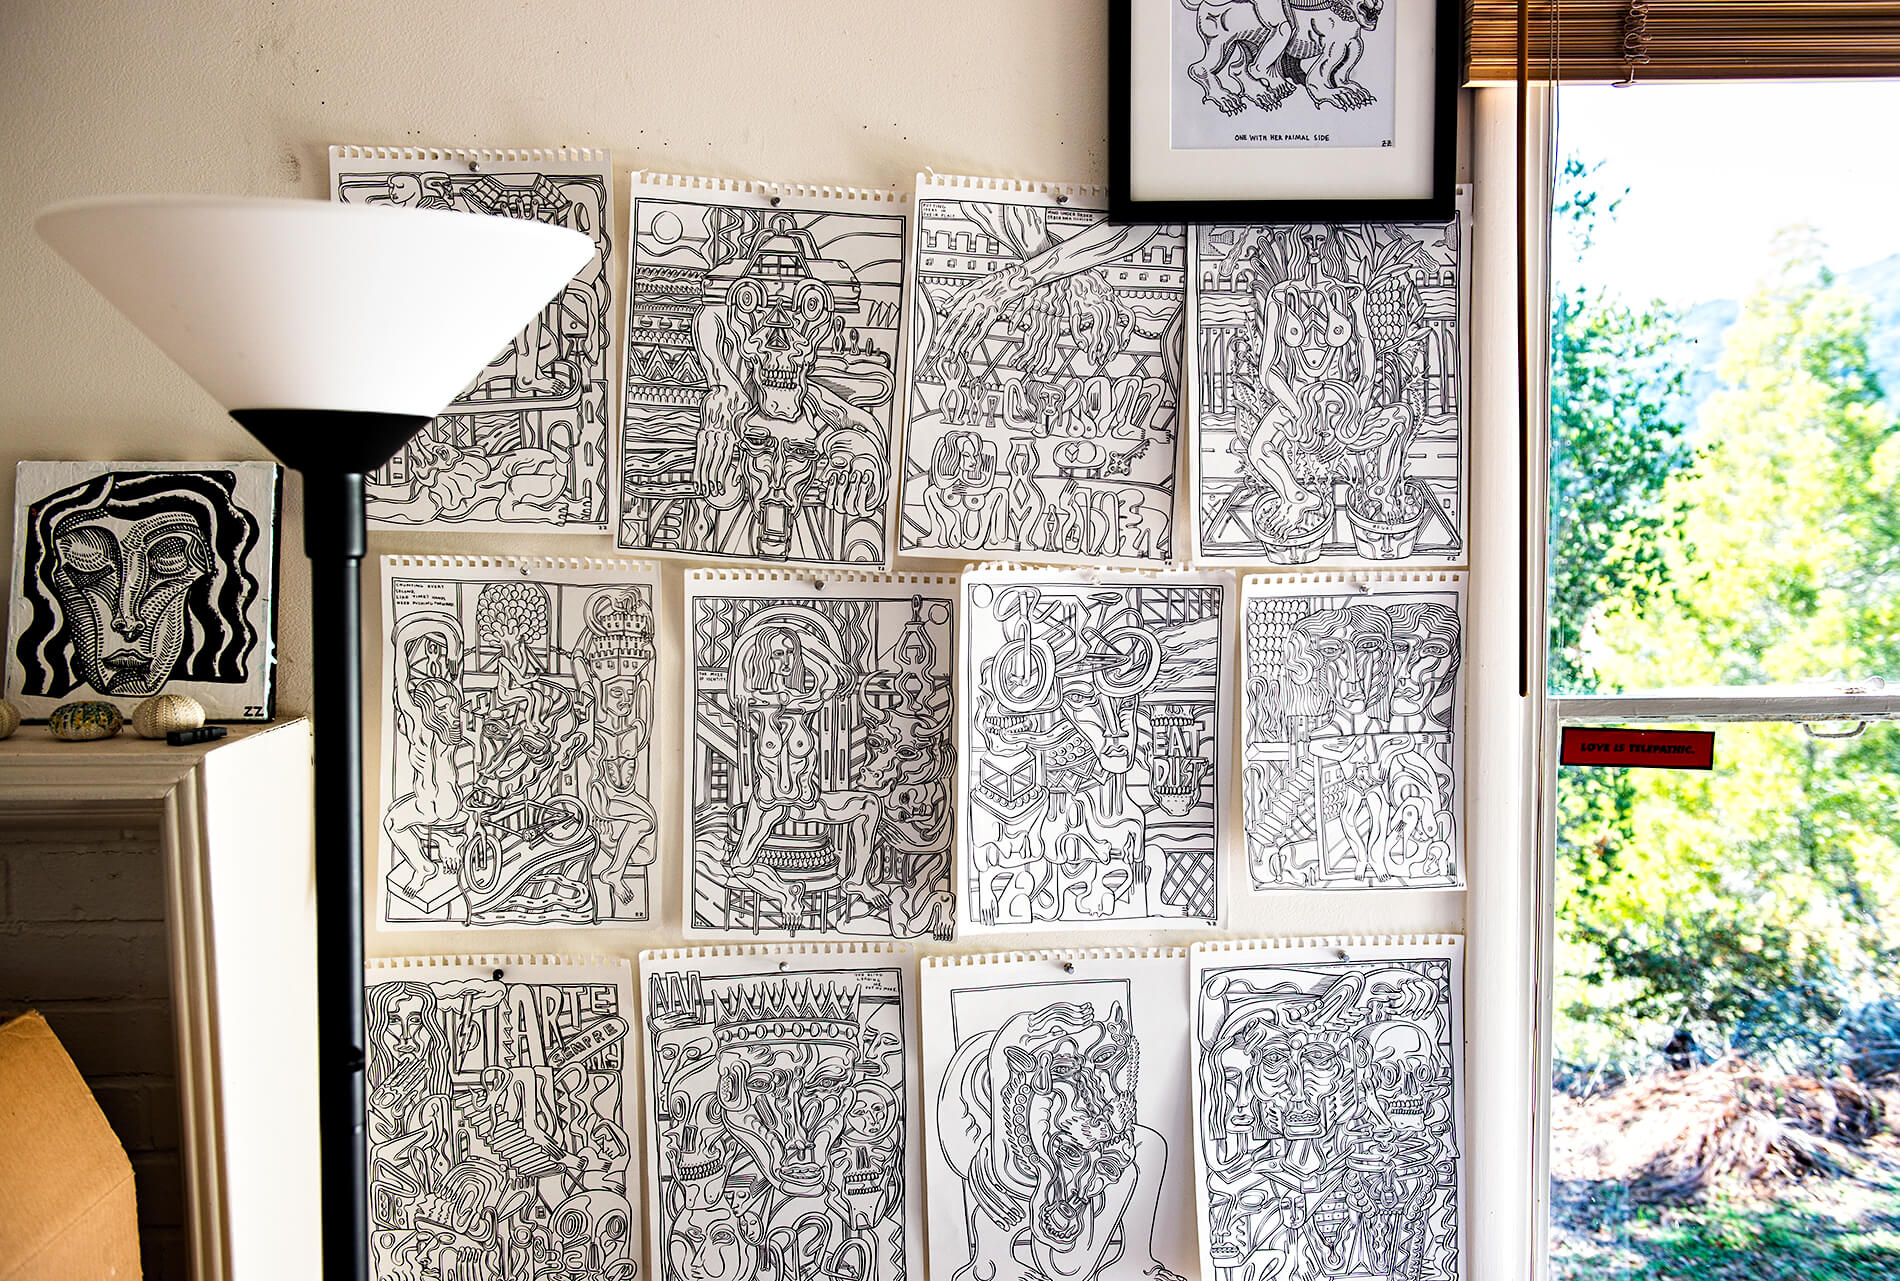 Zio Ziegler sketches on wall